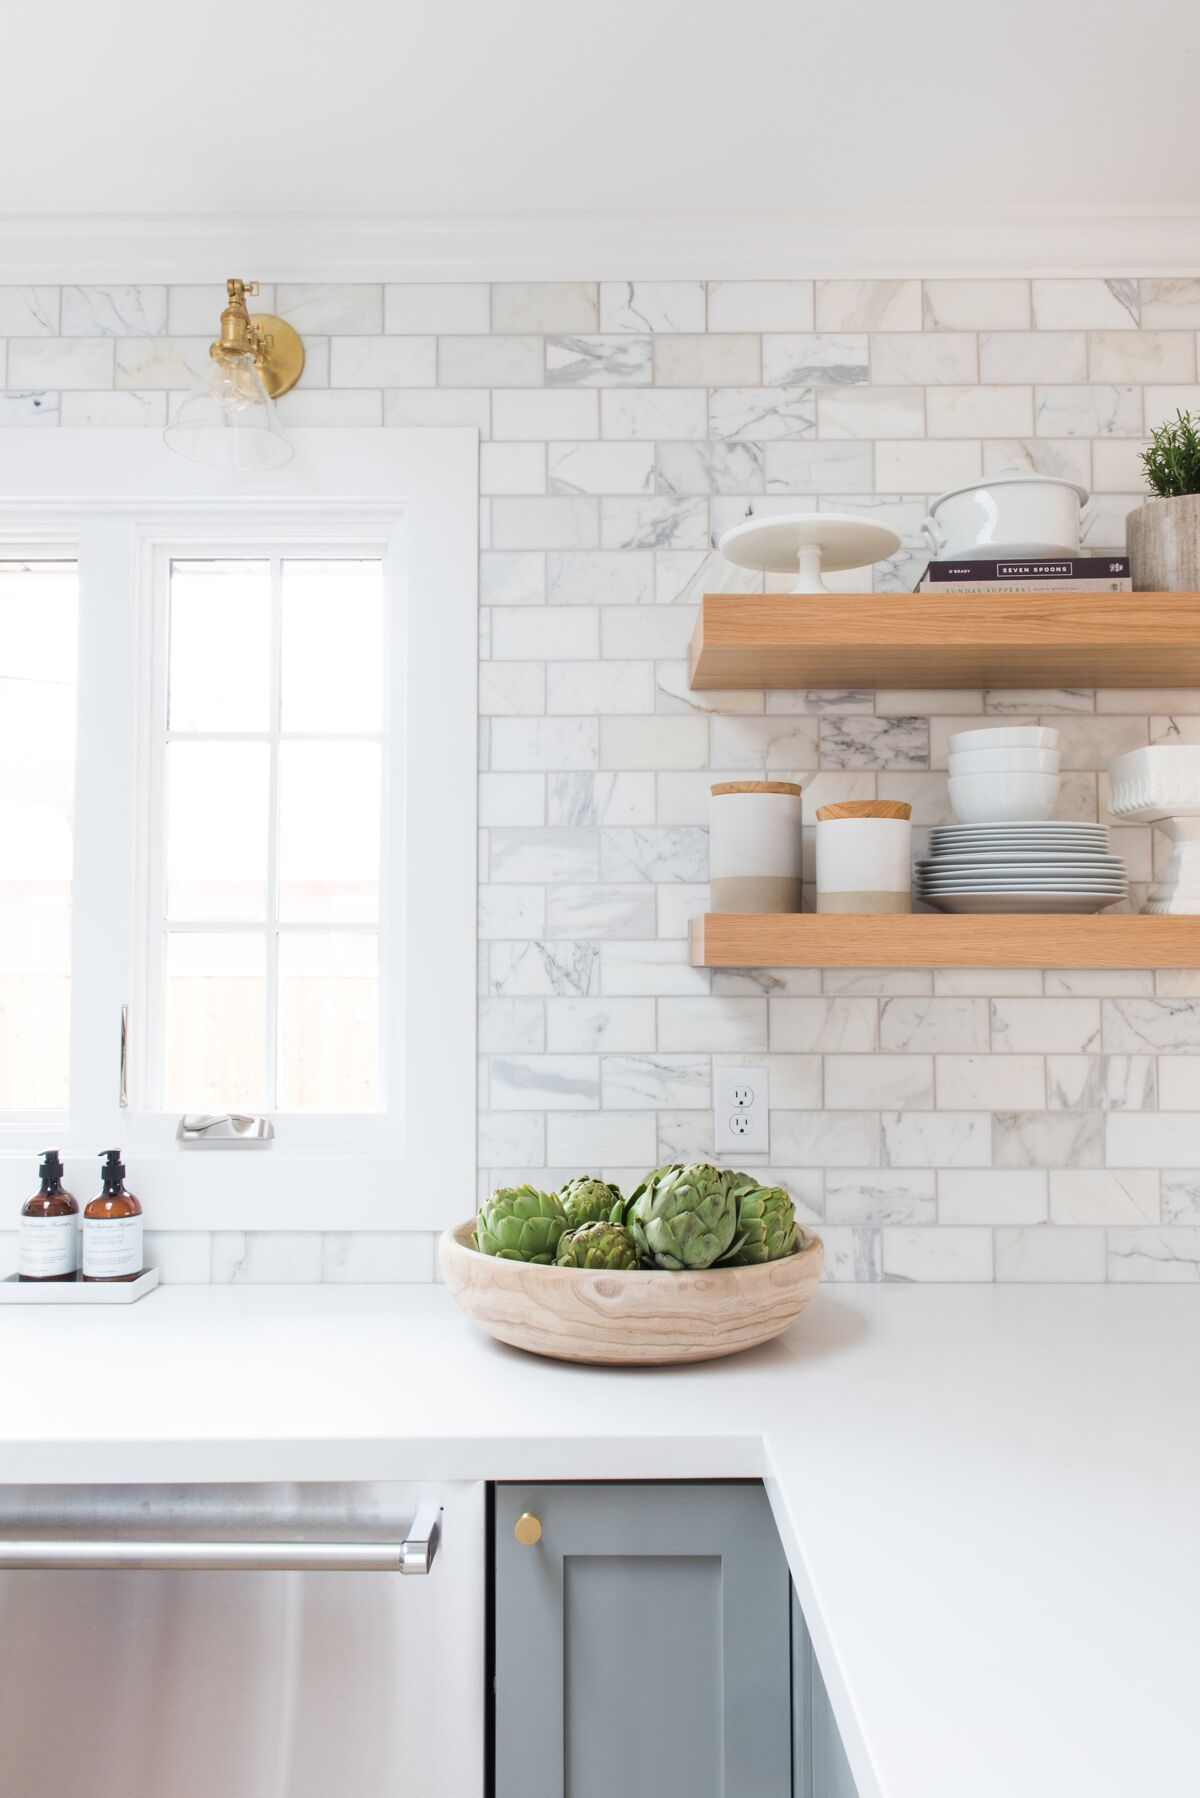 emerson project webisode reveal design inspo marble subway tiles white floating shelf pale grey cabinets tile brass sconces shelves wood shelving units countertop supports